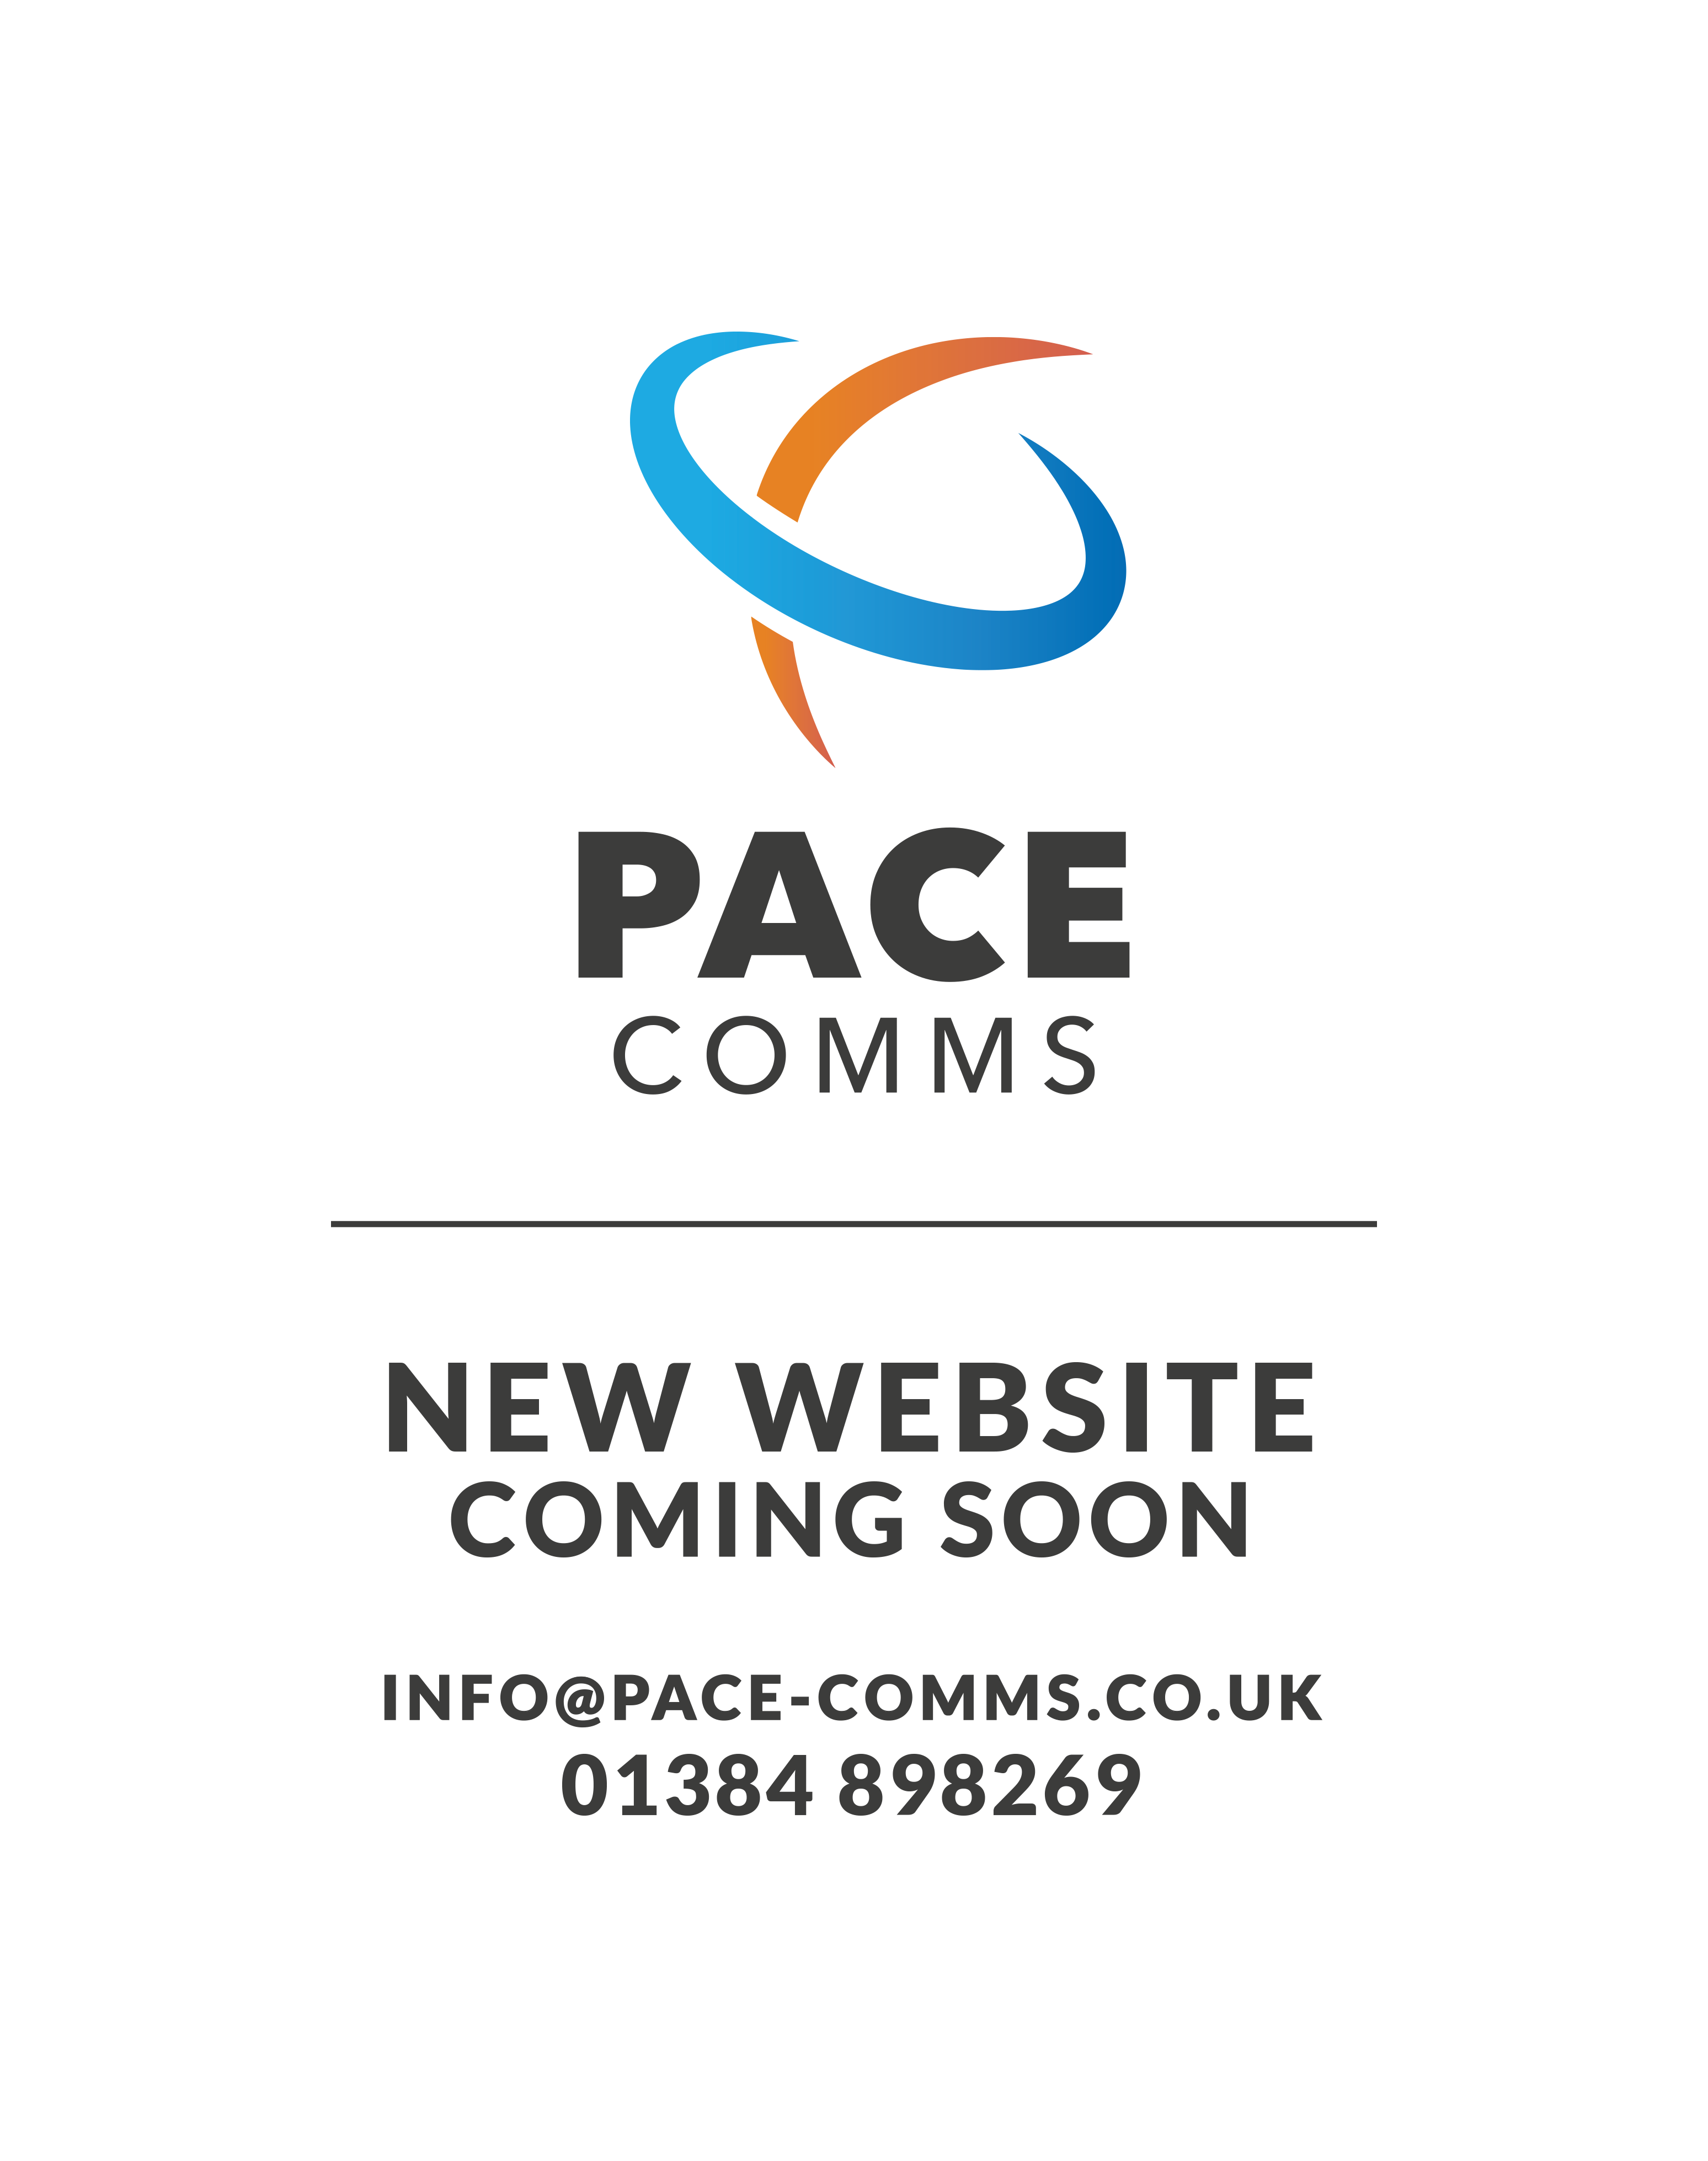 Pace Comms New Website Coming Soon